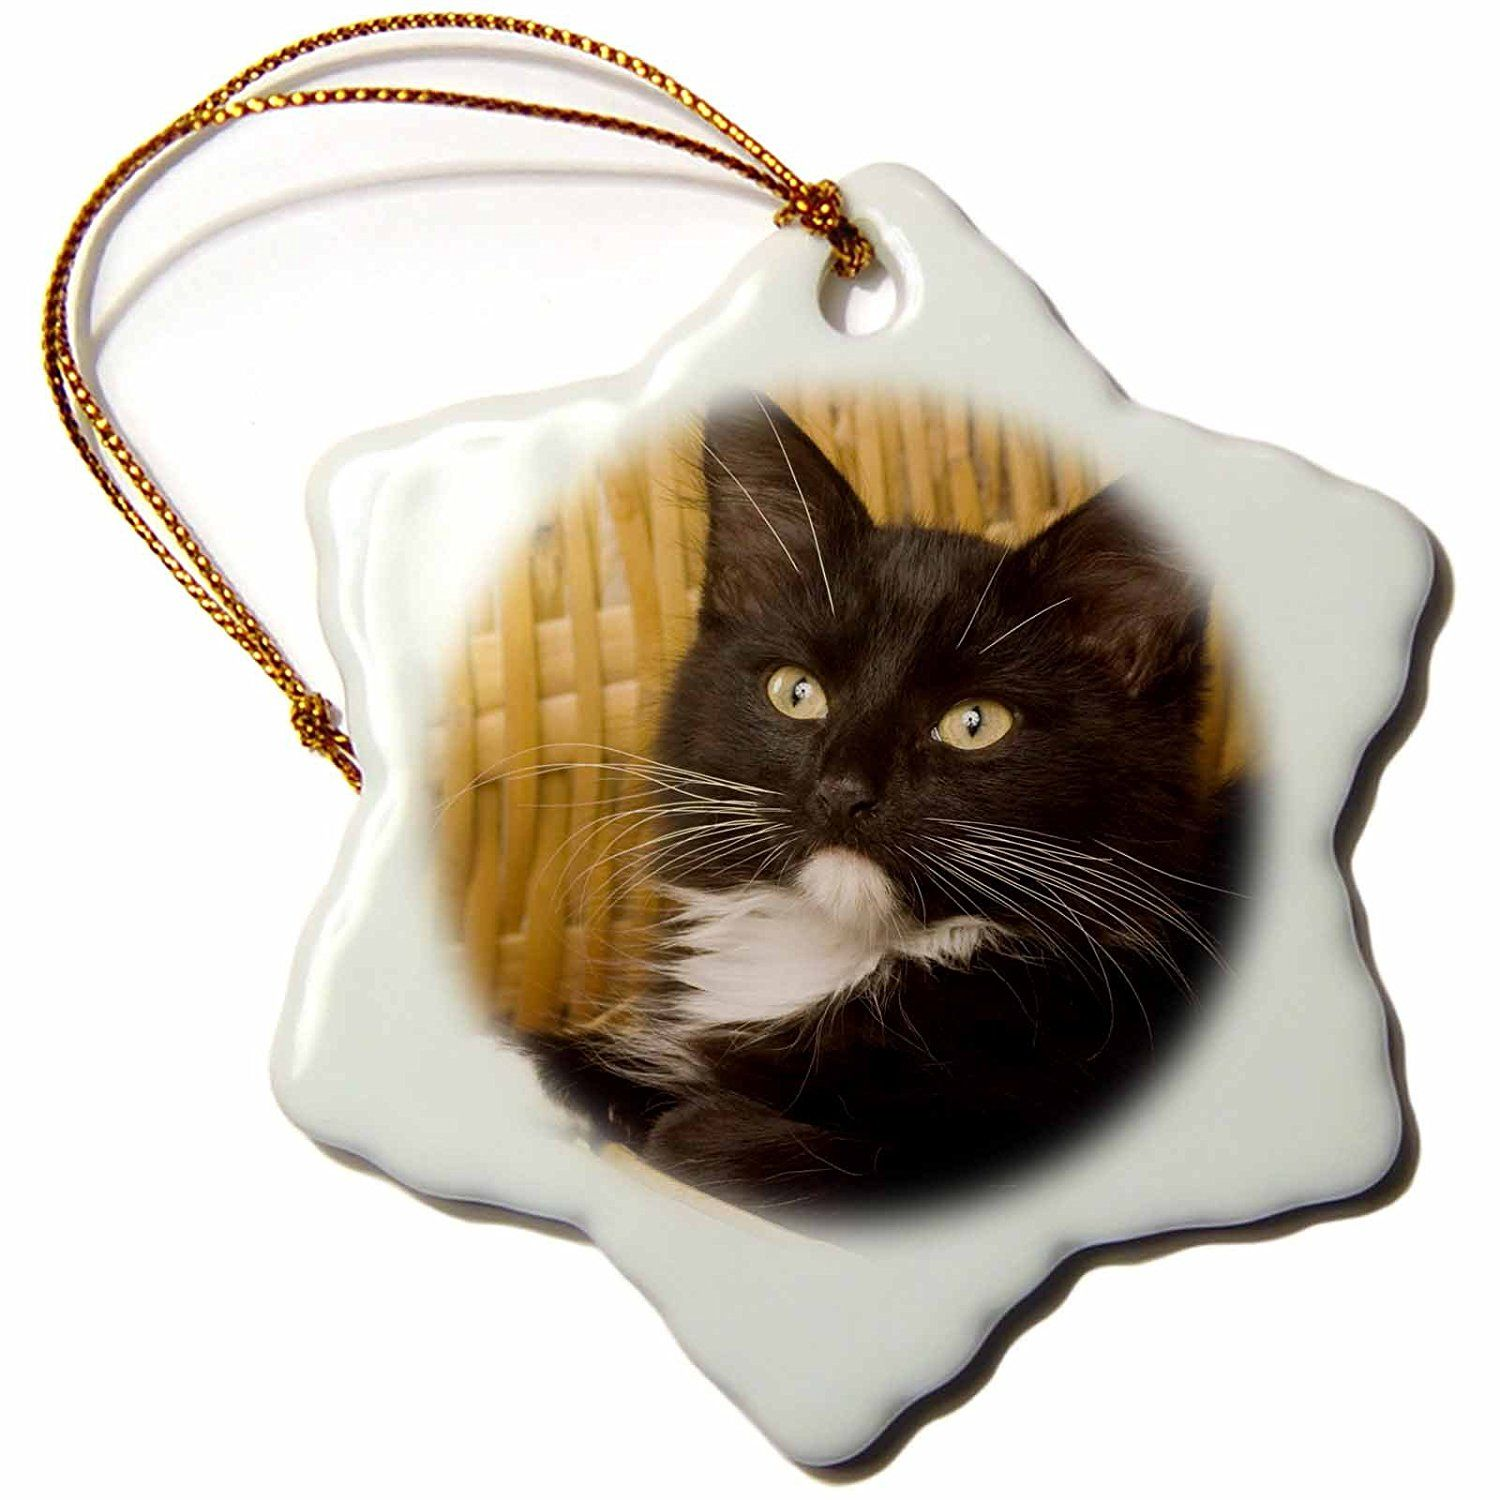 3drose Orn 84111 1 Short Haired Kitten On Hamper Lid Cats Na02 Mpr0102 Maresa Pryor Snowflake Porcelain O The Holiday Aisle Holiday Shapes Porcelain Ornaments